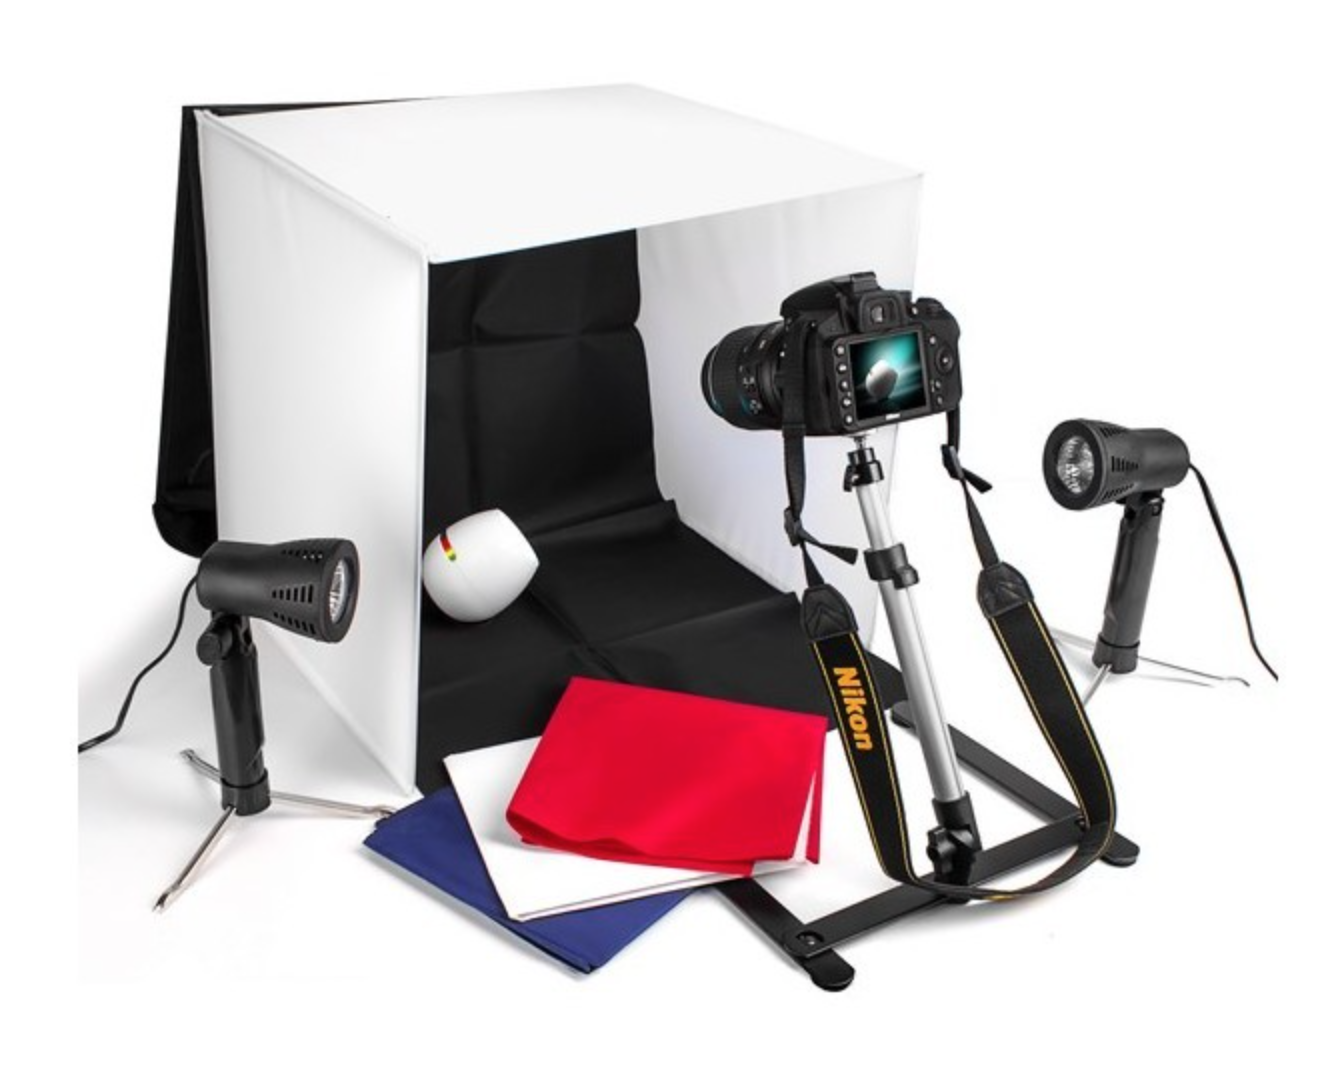 Photo Studio Table Top Tent Lighting Kit